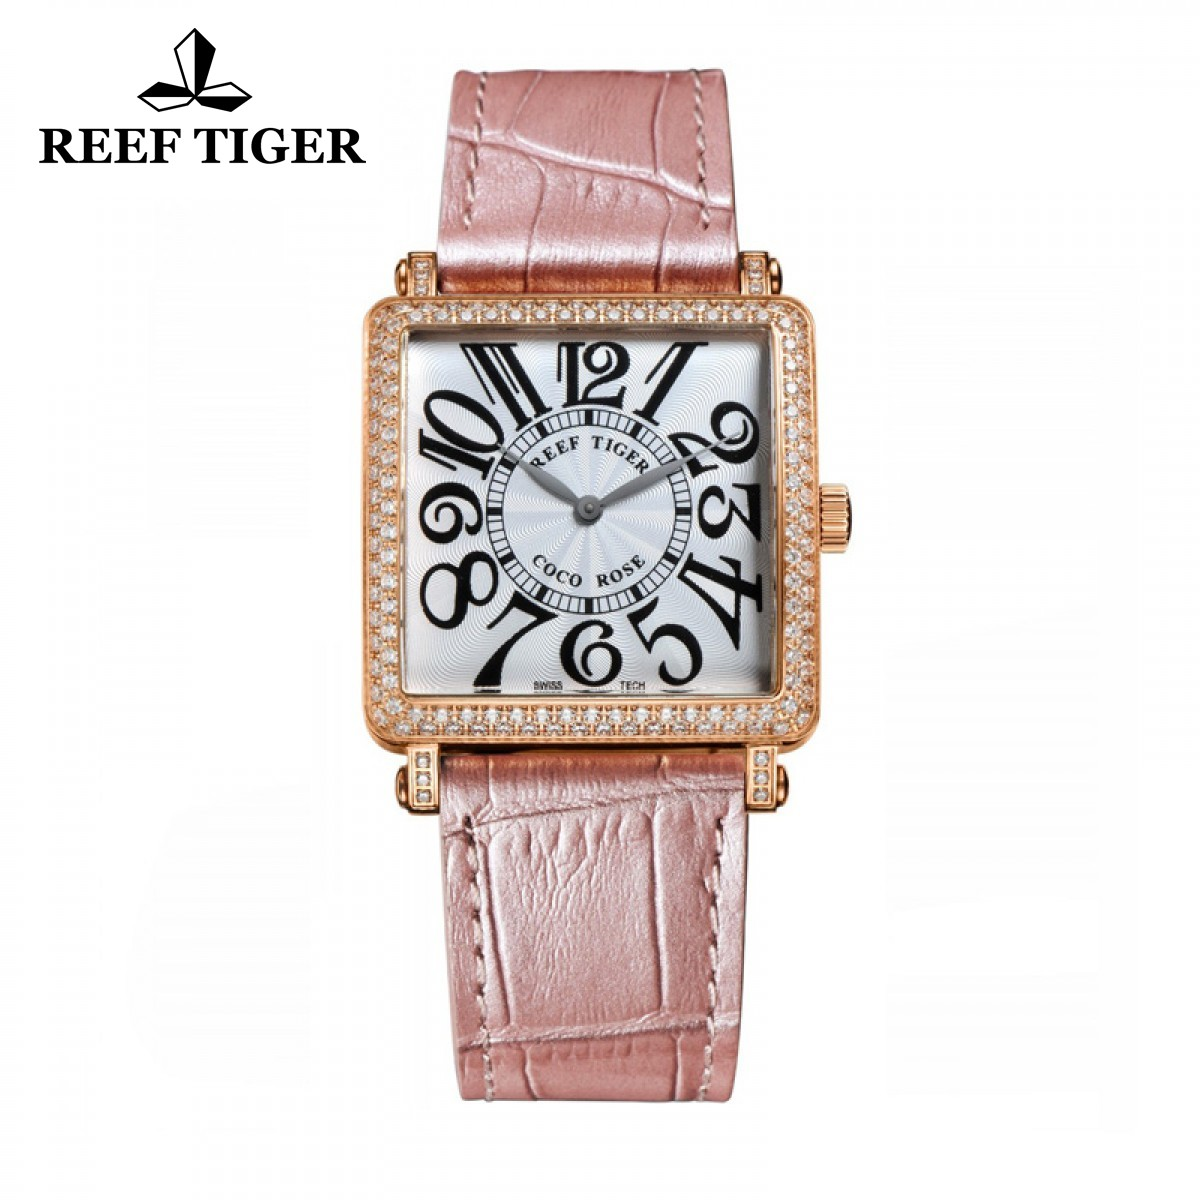 Reef Tiger Lady Fashion Watch Rose Gold Case White Dial Diamonds Square Watch RGA173-PWSDA